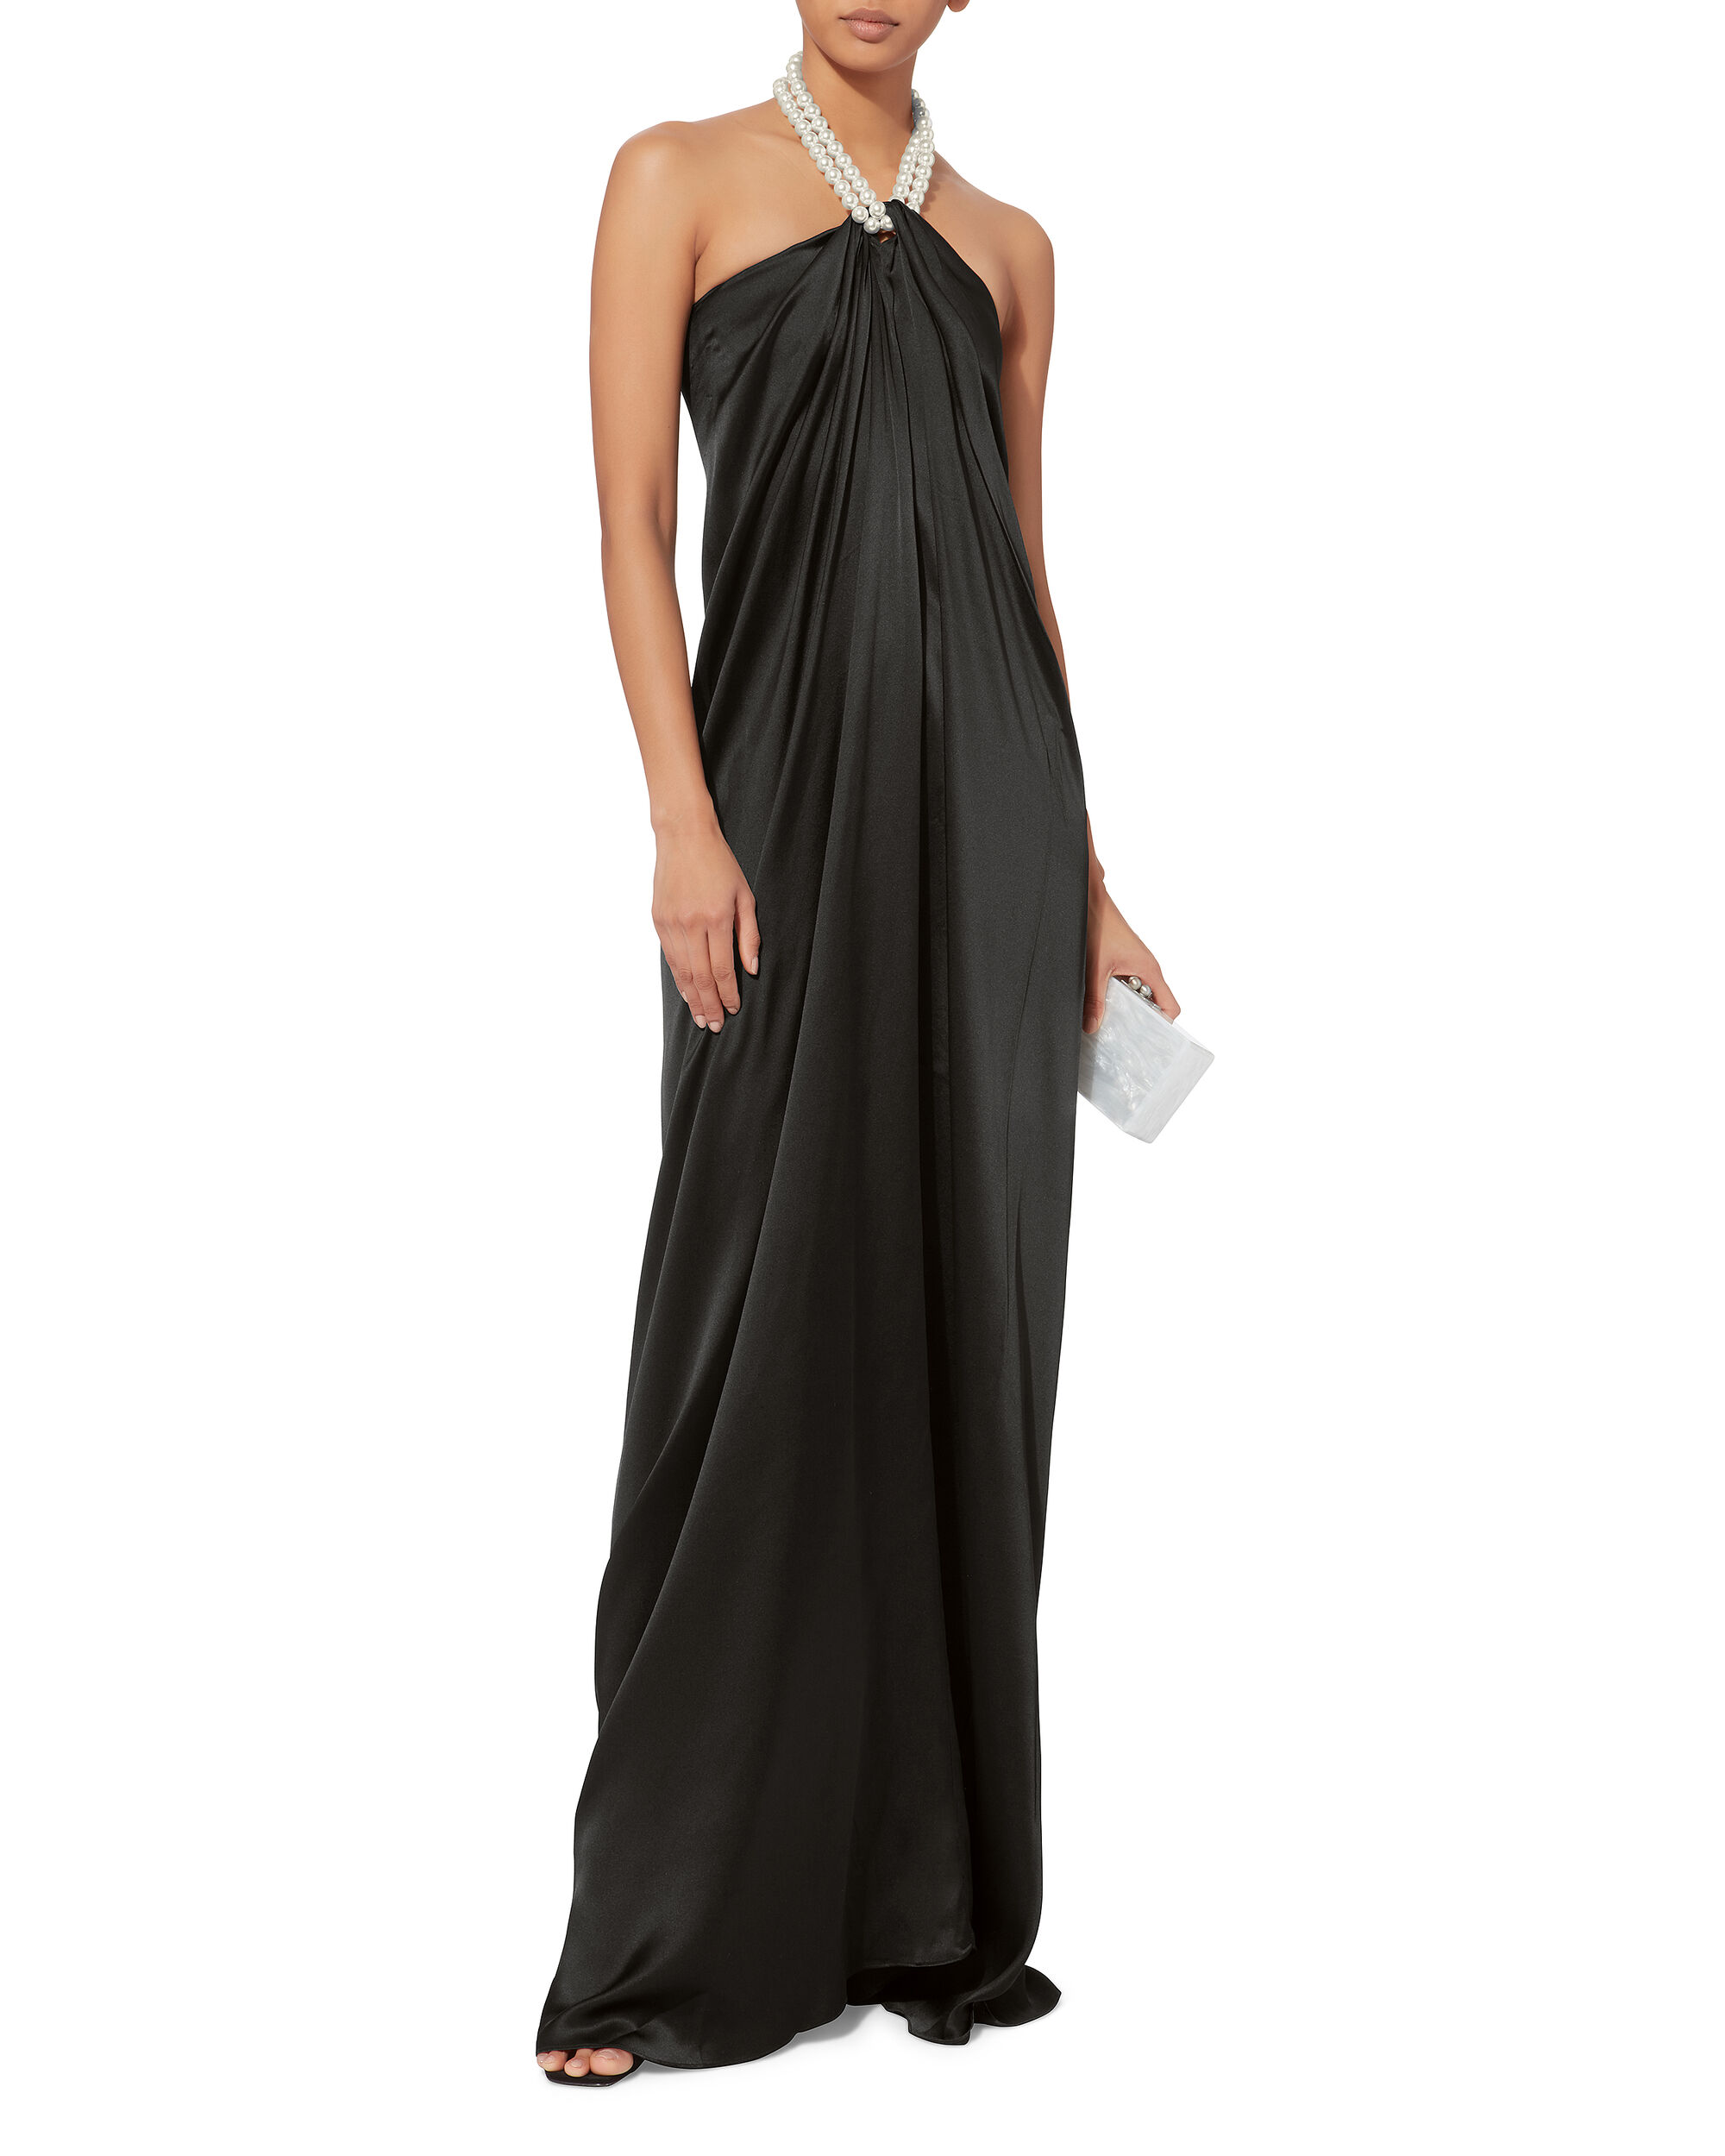 Pearl Halter Sarong Dress, BLACK, hi-res